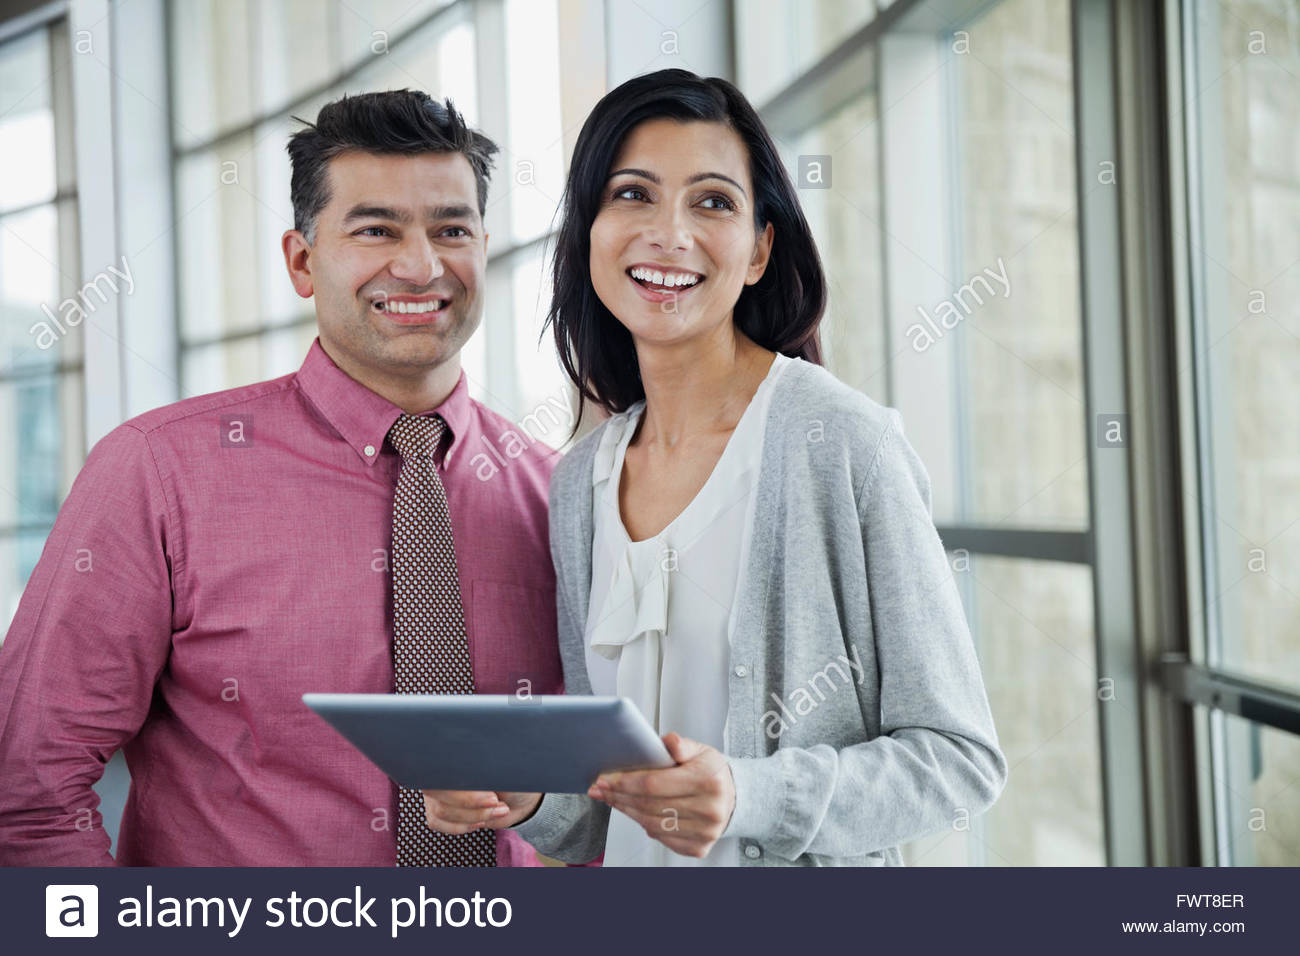 Business people with digital tablet looking away in office - Stock Image